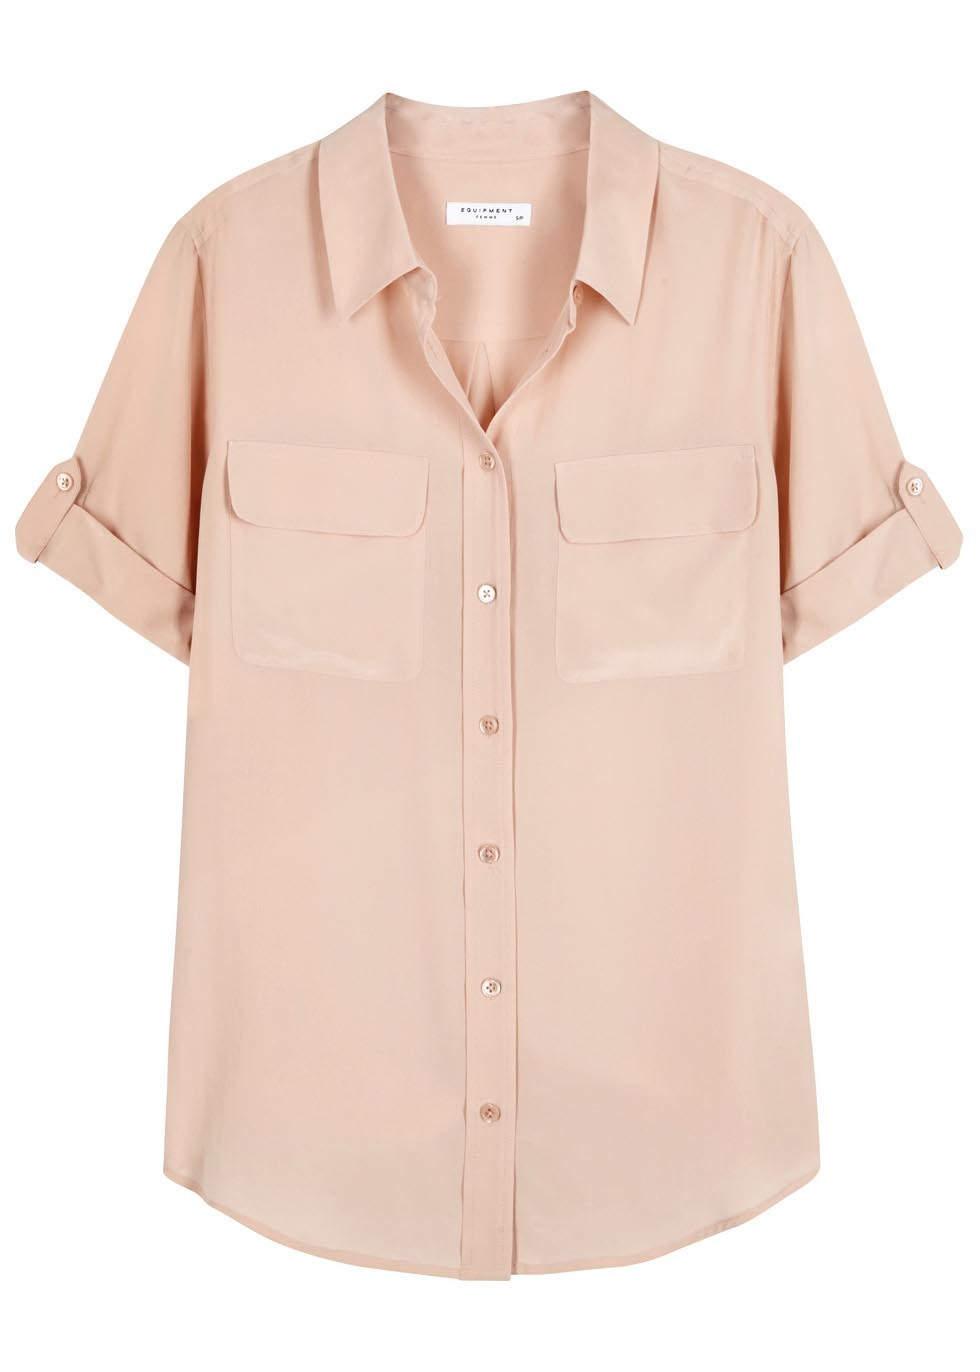 Slim Signature Blush Washed Silk Shirt - neckline: shirt collar/peter pan/zip with opening; pattern: plain; style: shirt; predominant colour: blush; occasions: casual; length: standard; fibres: silk - 100%; fit: body skimming; sleeve length: short sleeve; sleeve style: standard; texture group: crepes; bust detail: bulky details at bust; pattern type: fabric; season: a/w 2015; wardrobe: basic